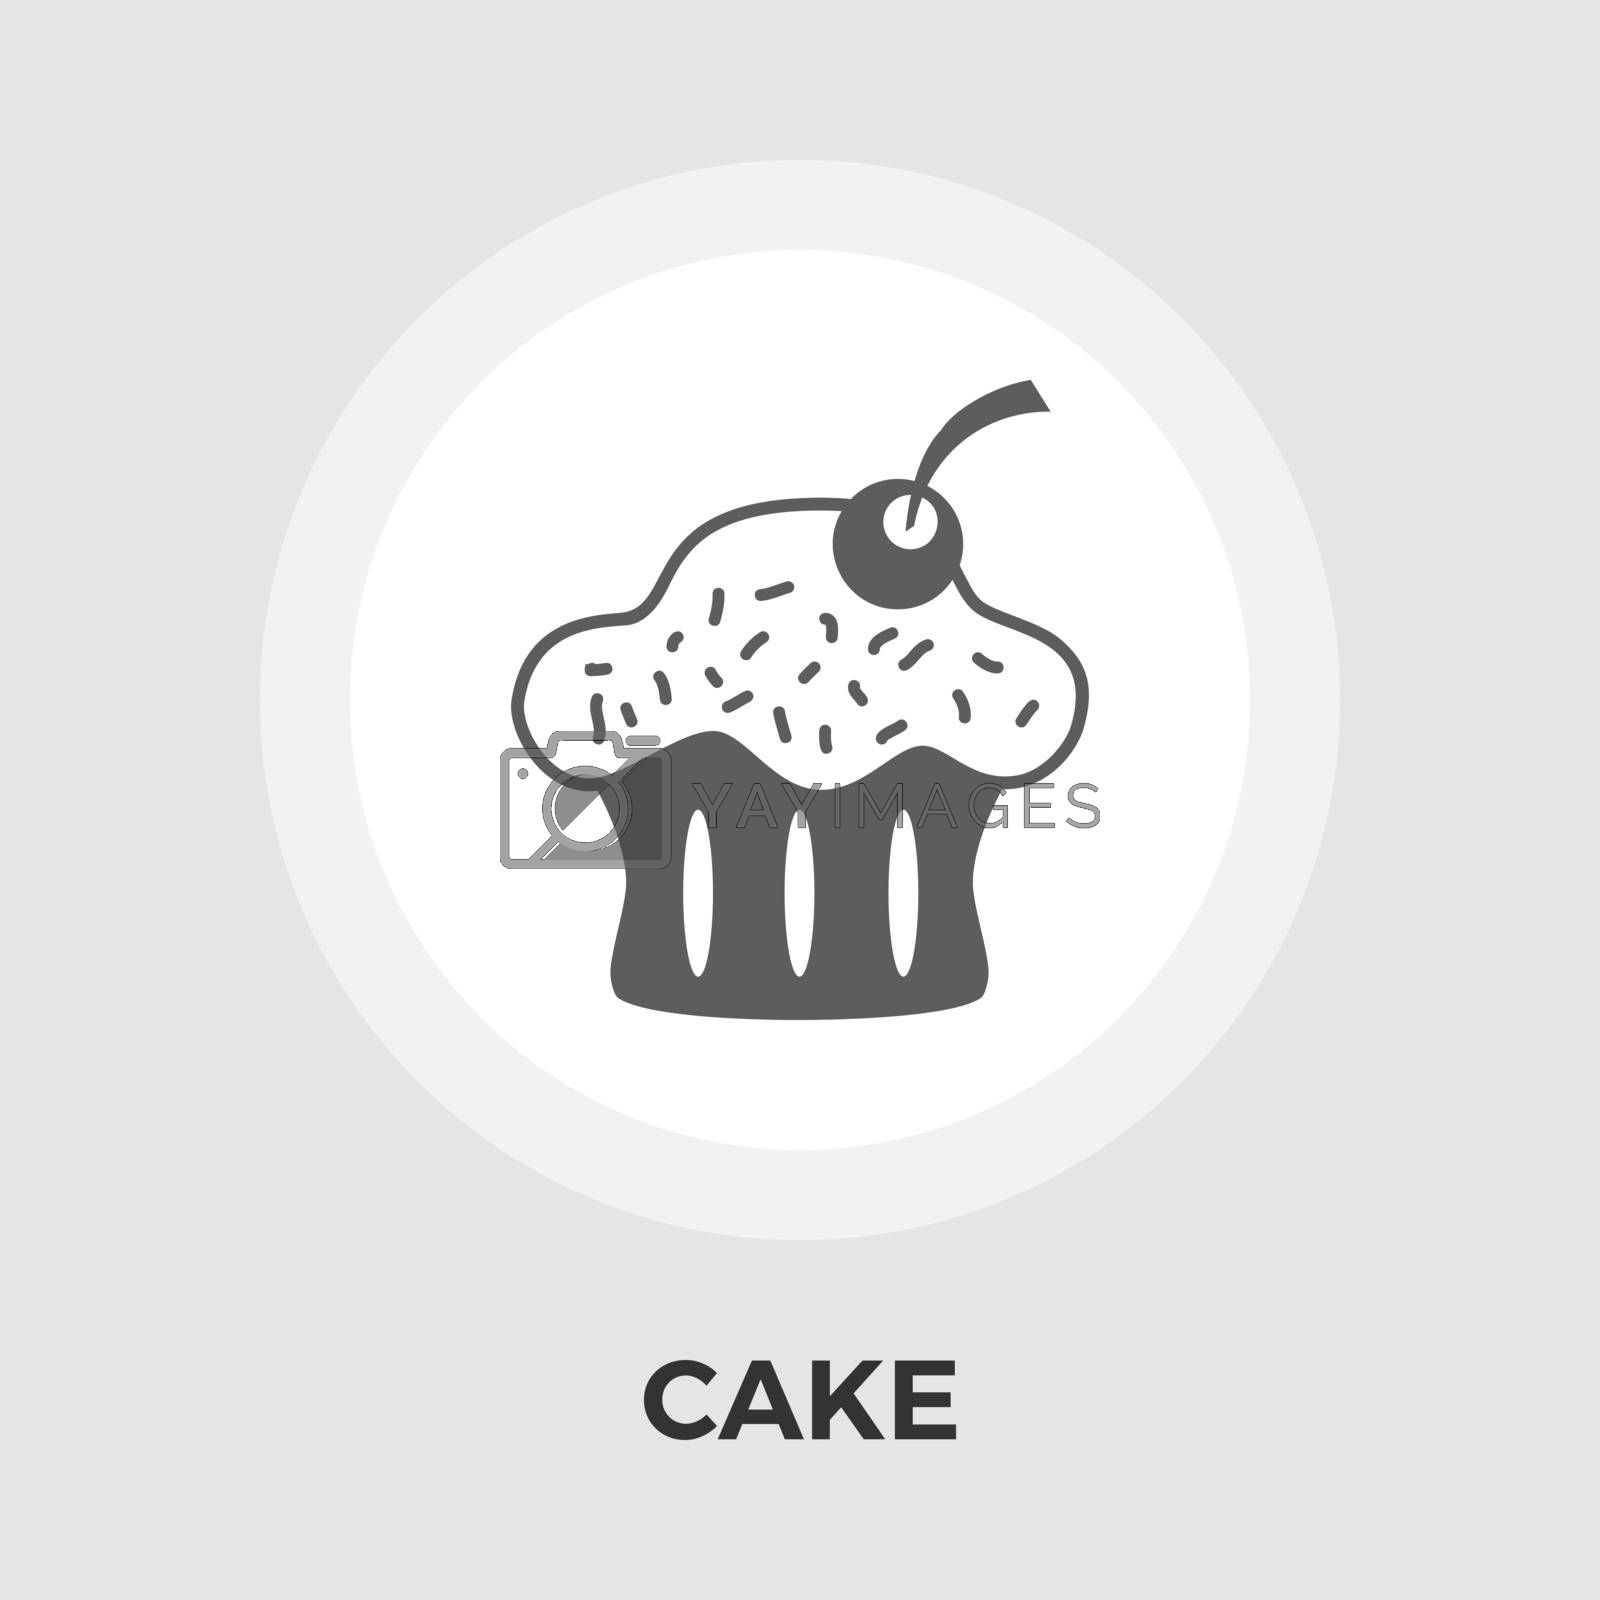 Cake icon vector. Flat icon isolated on the white background. Editable EPS file. Vector illustration.